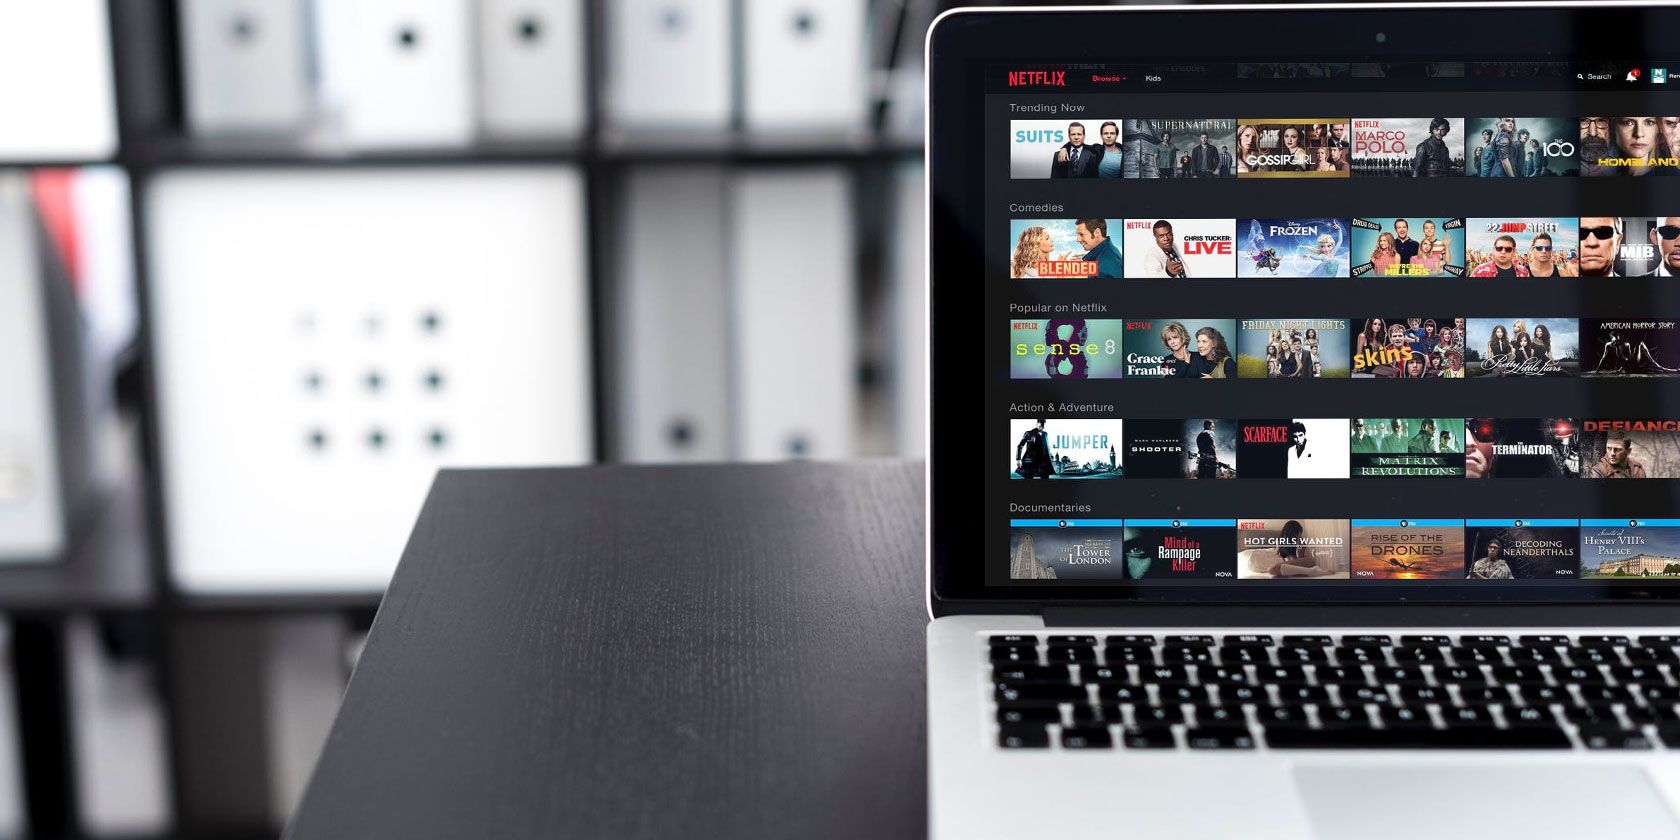 5 Simple Tips to Manage What You Watch on Netflix